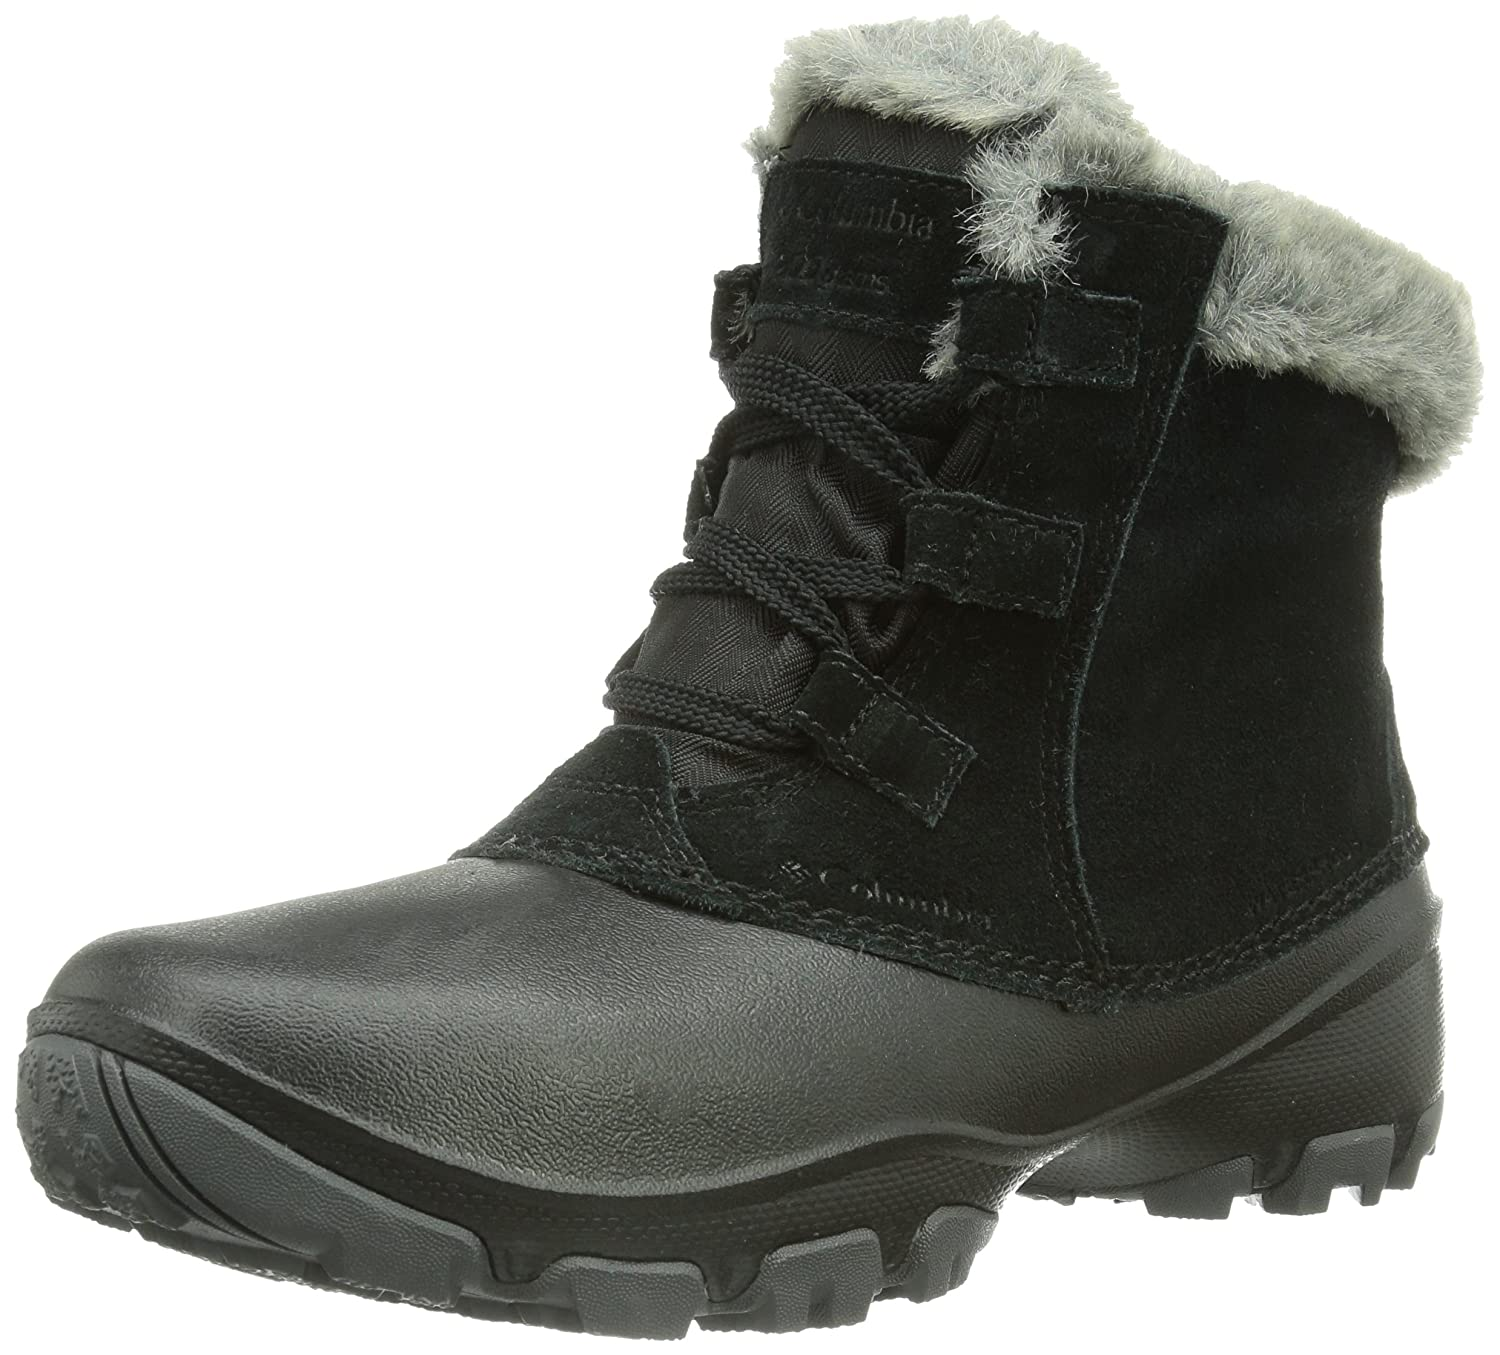 Columbia Women's Sierra Summette Shorty Winter Boot B00GW95UD0 7 B(M) US|Black, Red Plum